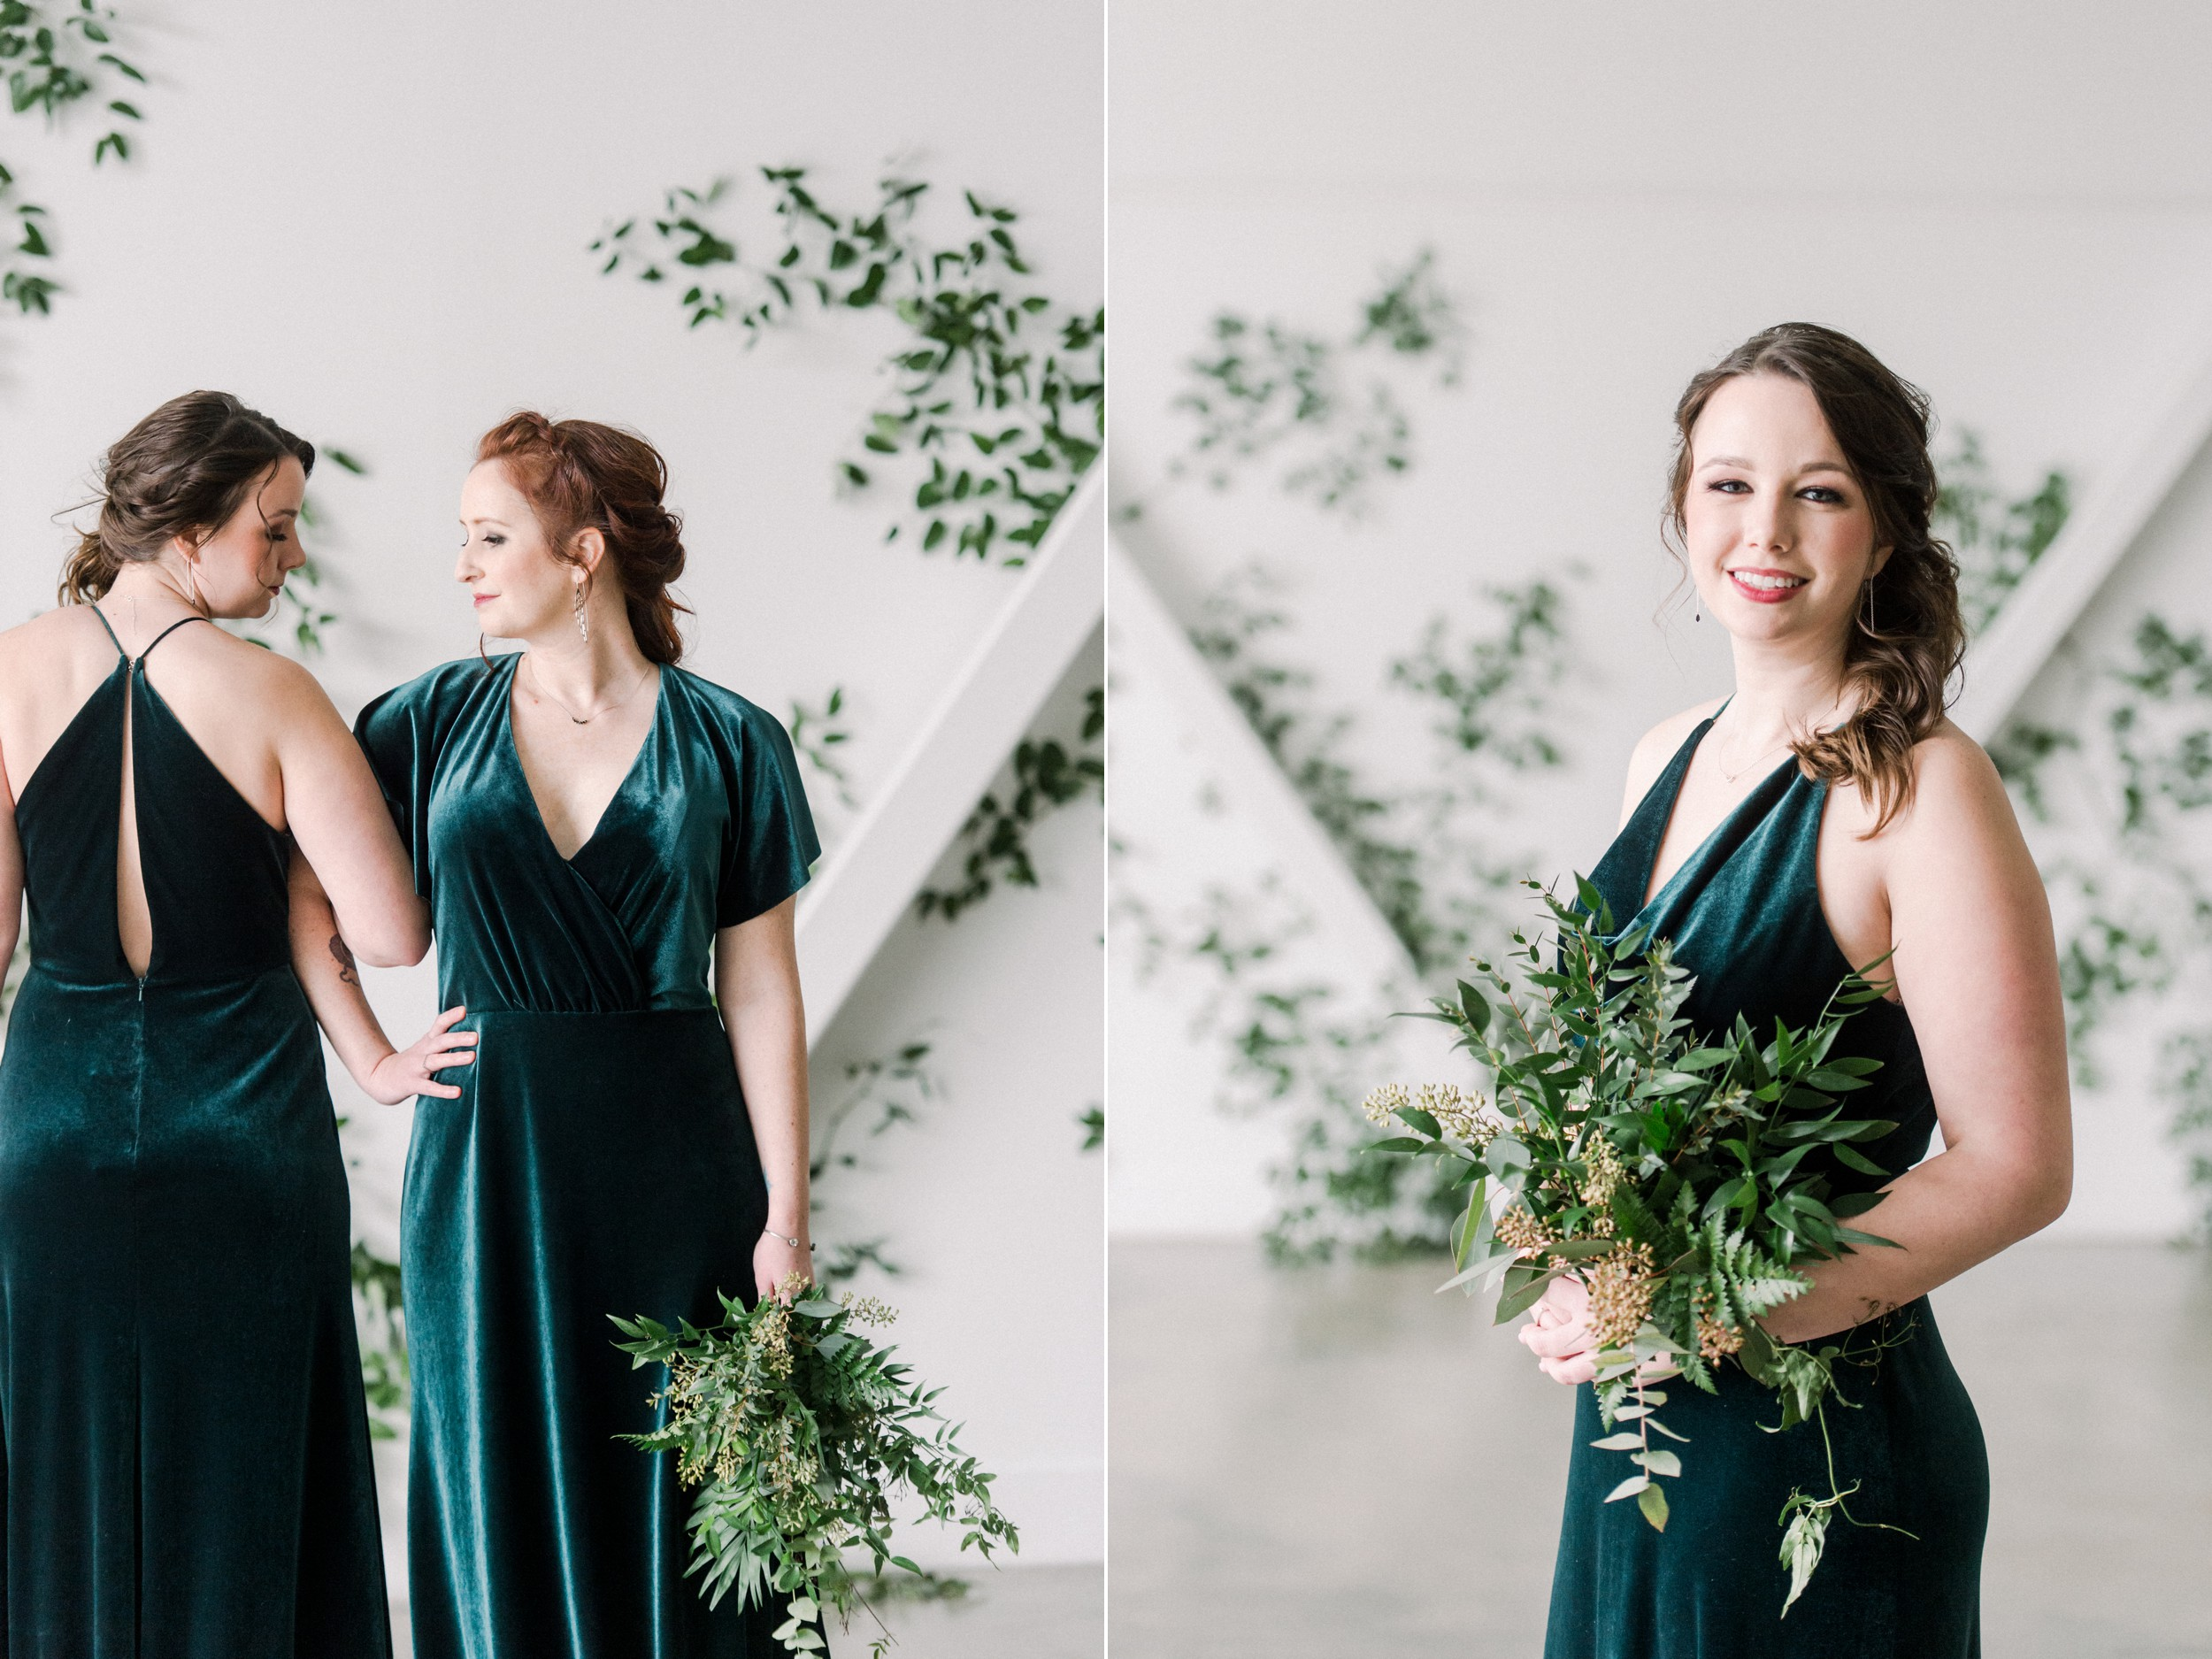 Jenny Yoo Bridesmaids Dresses in green velvet | Artists for humanity epicenter wedding | Boston wedding | green botanical wedding inspiration | bridesmaid style | green wedding inspo